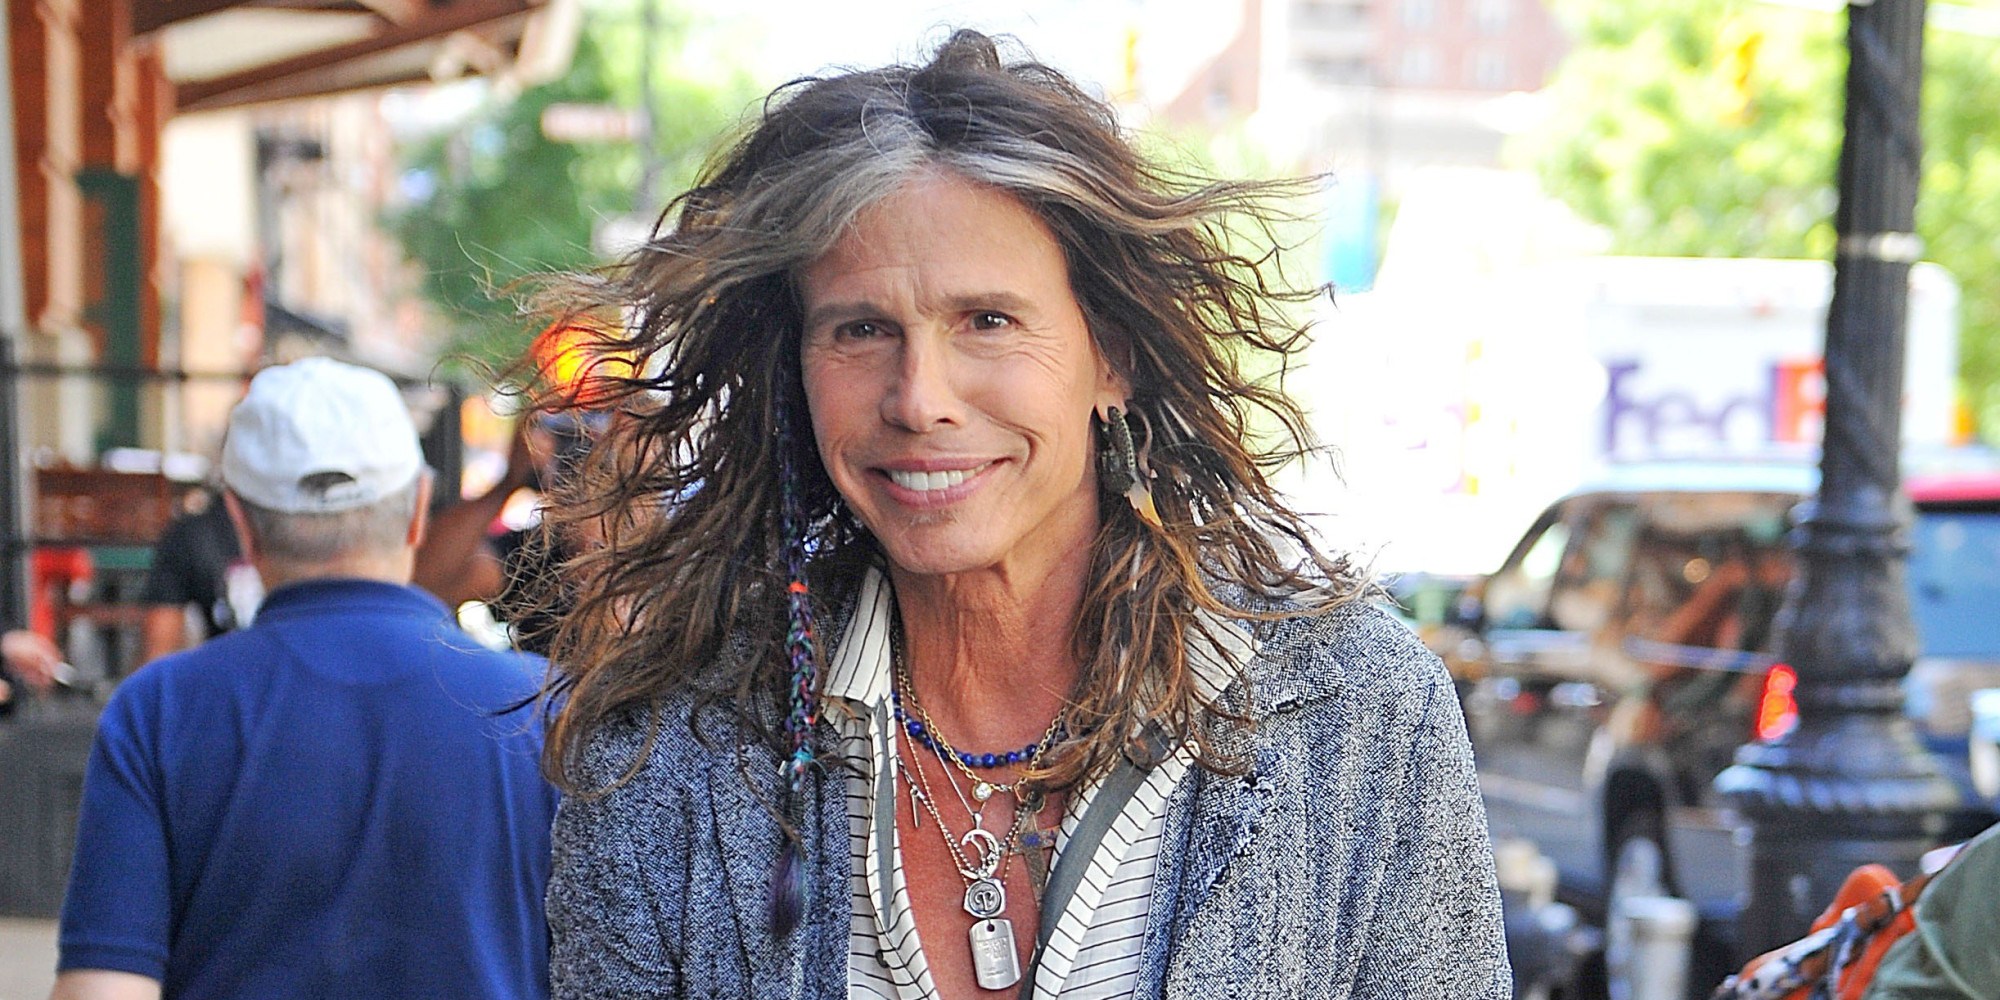 steven tyler takes a bathroom break at olive garden and walks out with breadsticks huffpost - Olive Garden Salary